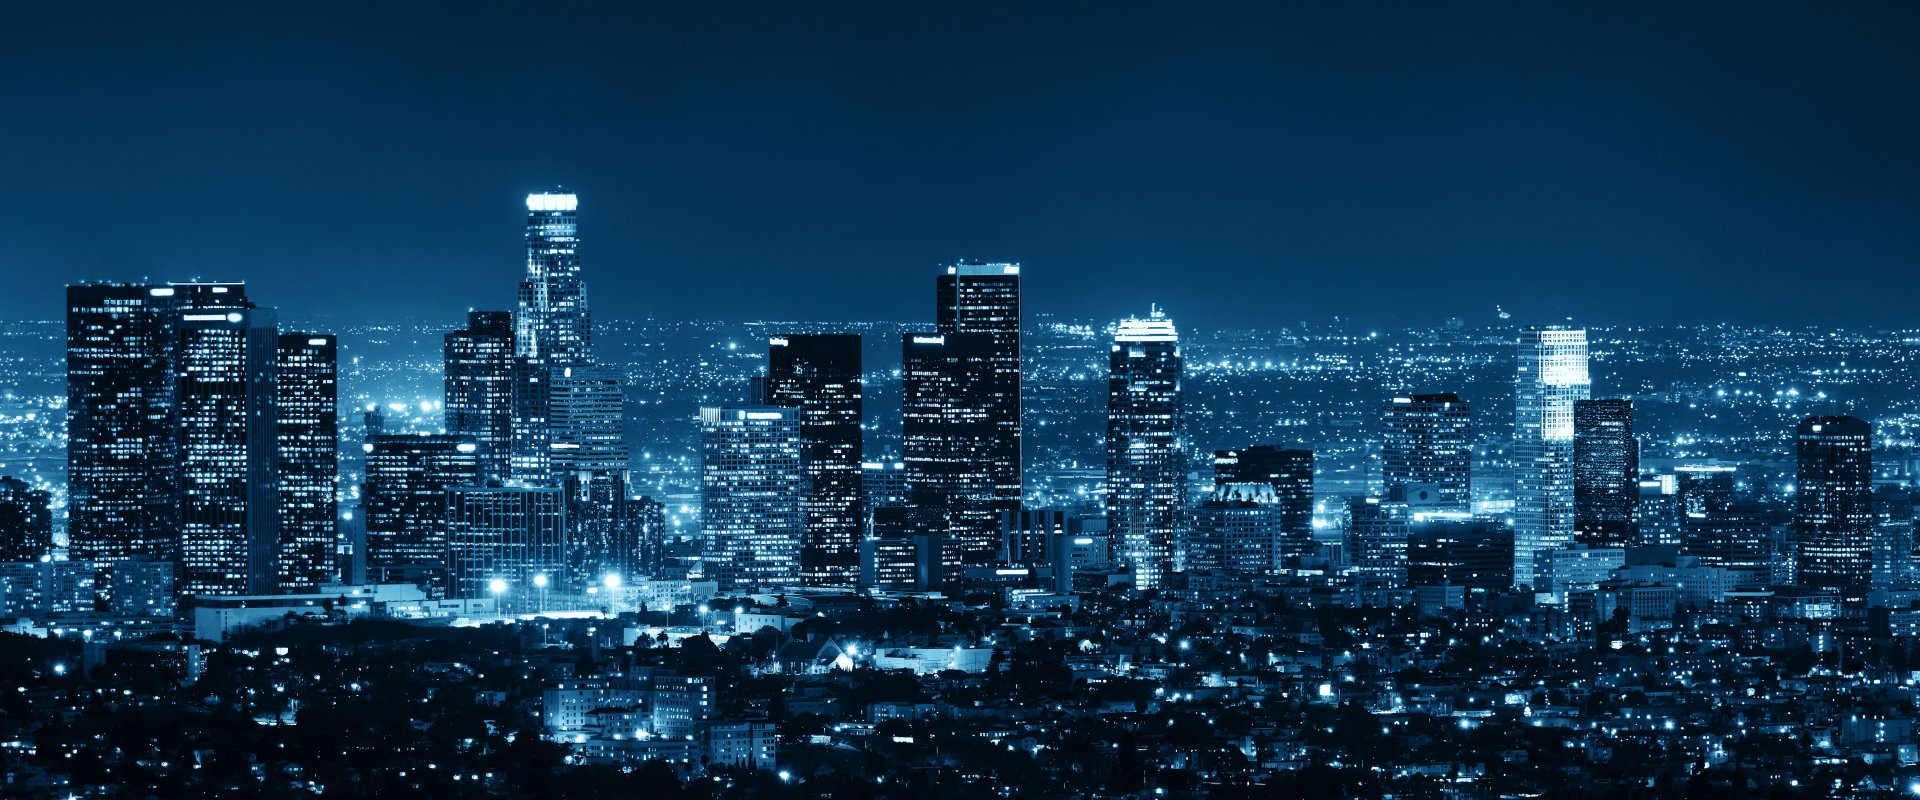 Man Made - Los Angeles  USA City Night Cityscape Horizon Building Skyscraper Wallpaper